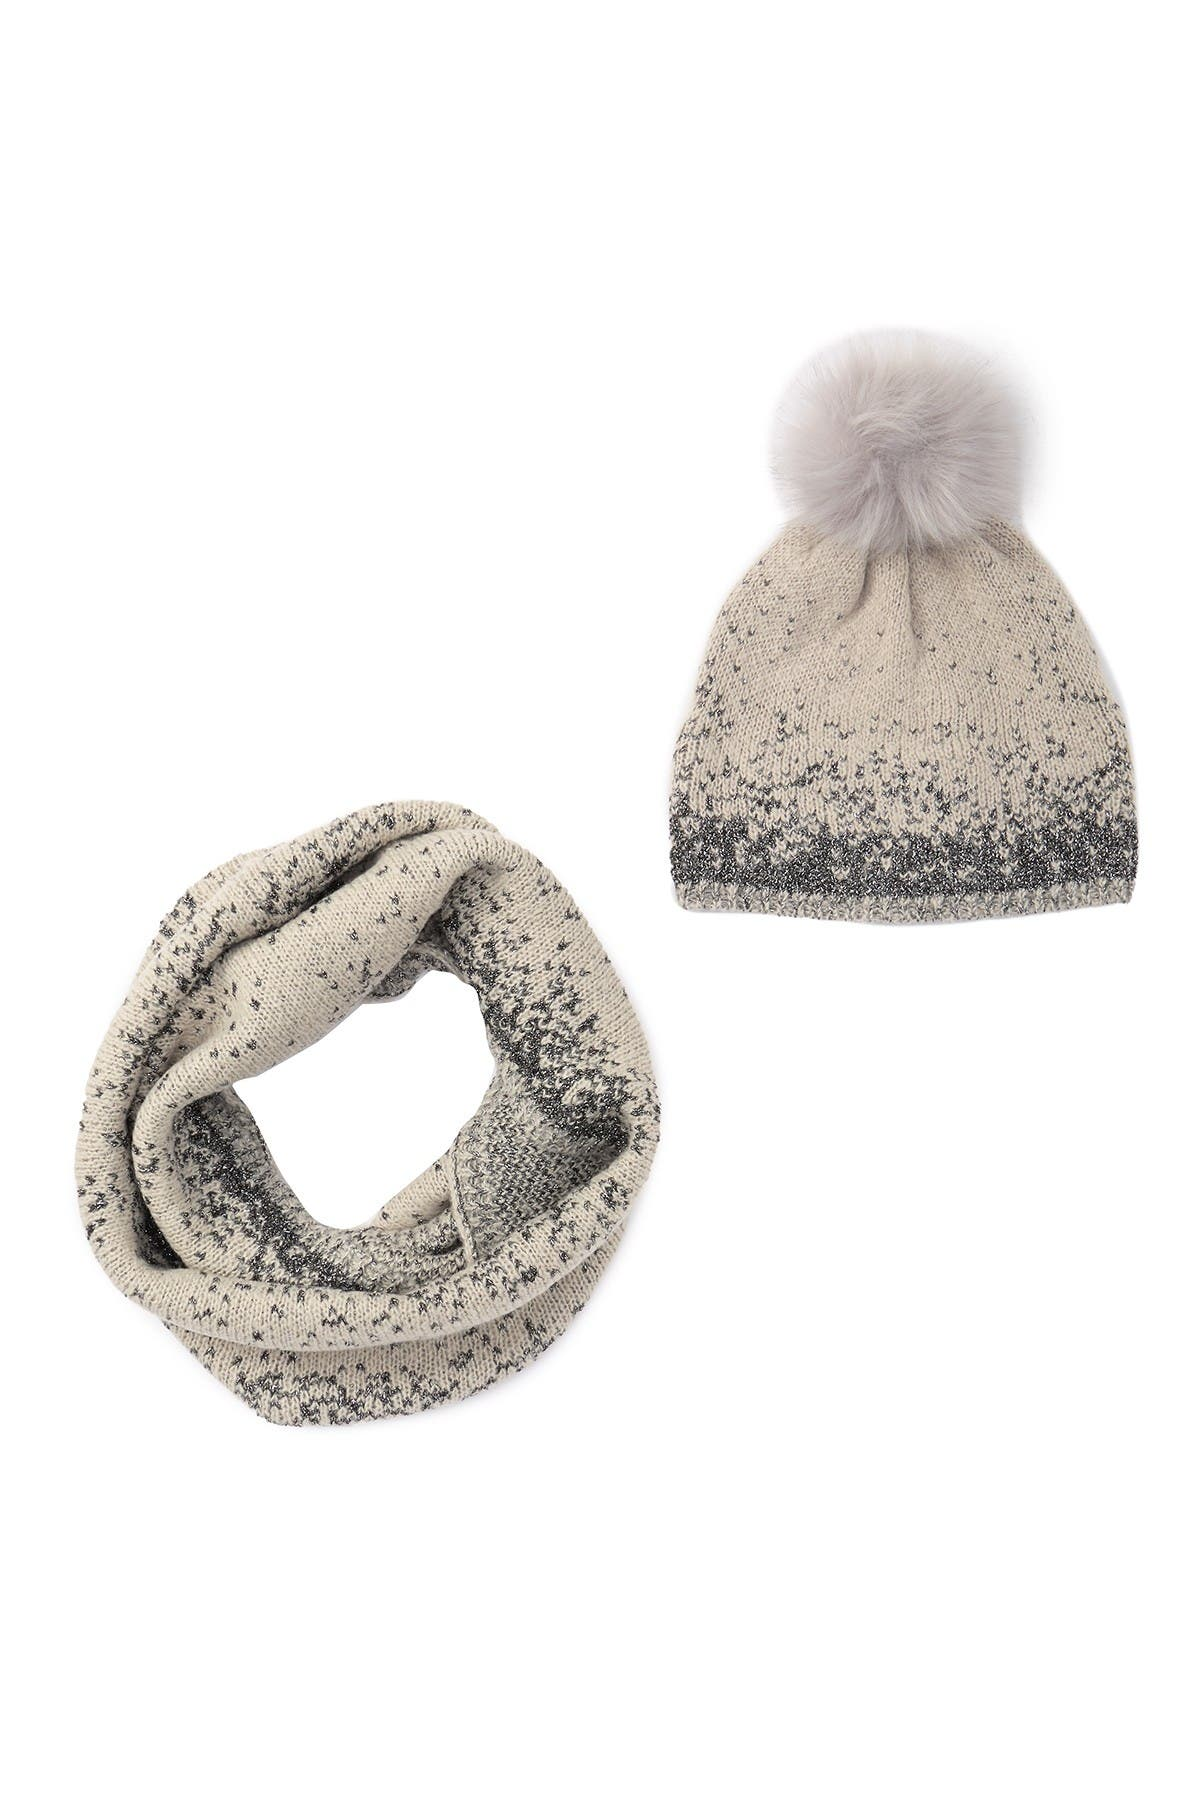 Aneco Womens Winter Warm Sets Knitted Fur Pompoms Beanie Hat Circle Loop Scarf Touch Screen Gloves Winter Favor Accessories